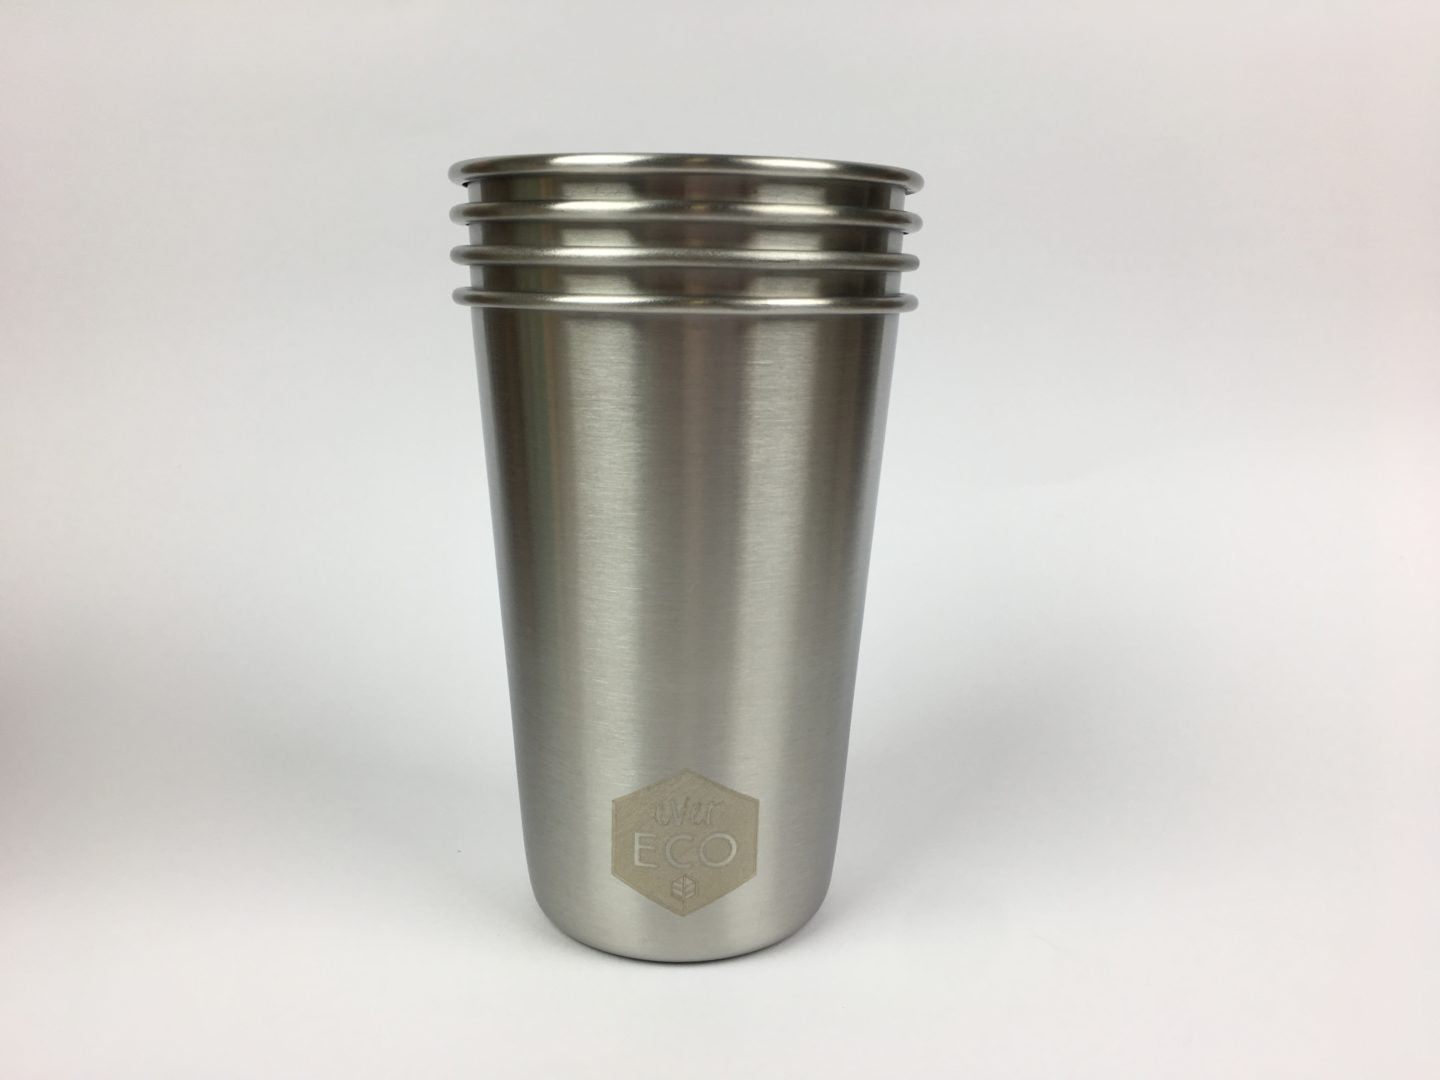 Ever Eco | Stainless steel drinking cups 500ml x 4 | Plastic Free Living | Environmentally Friendly Homewares